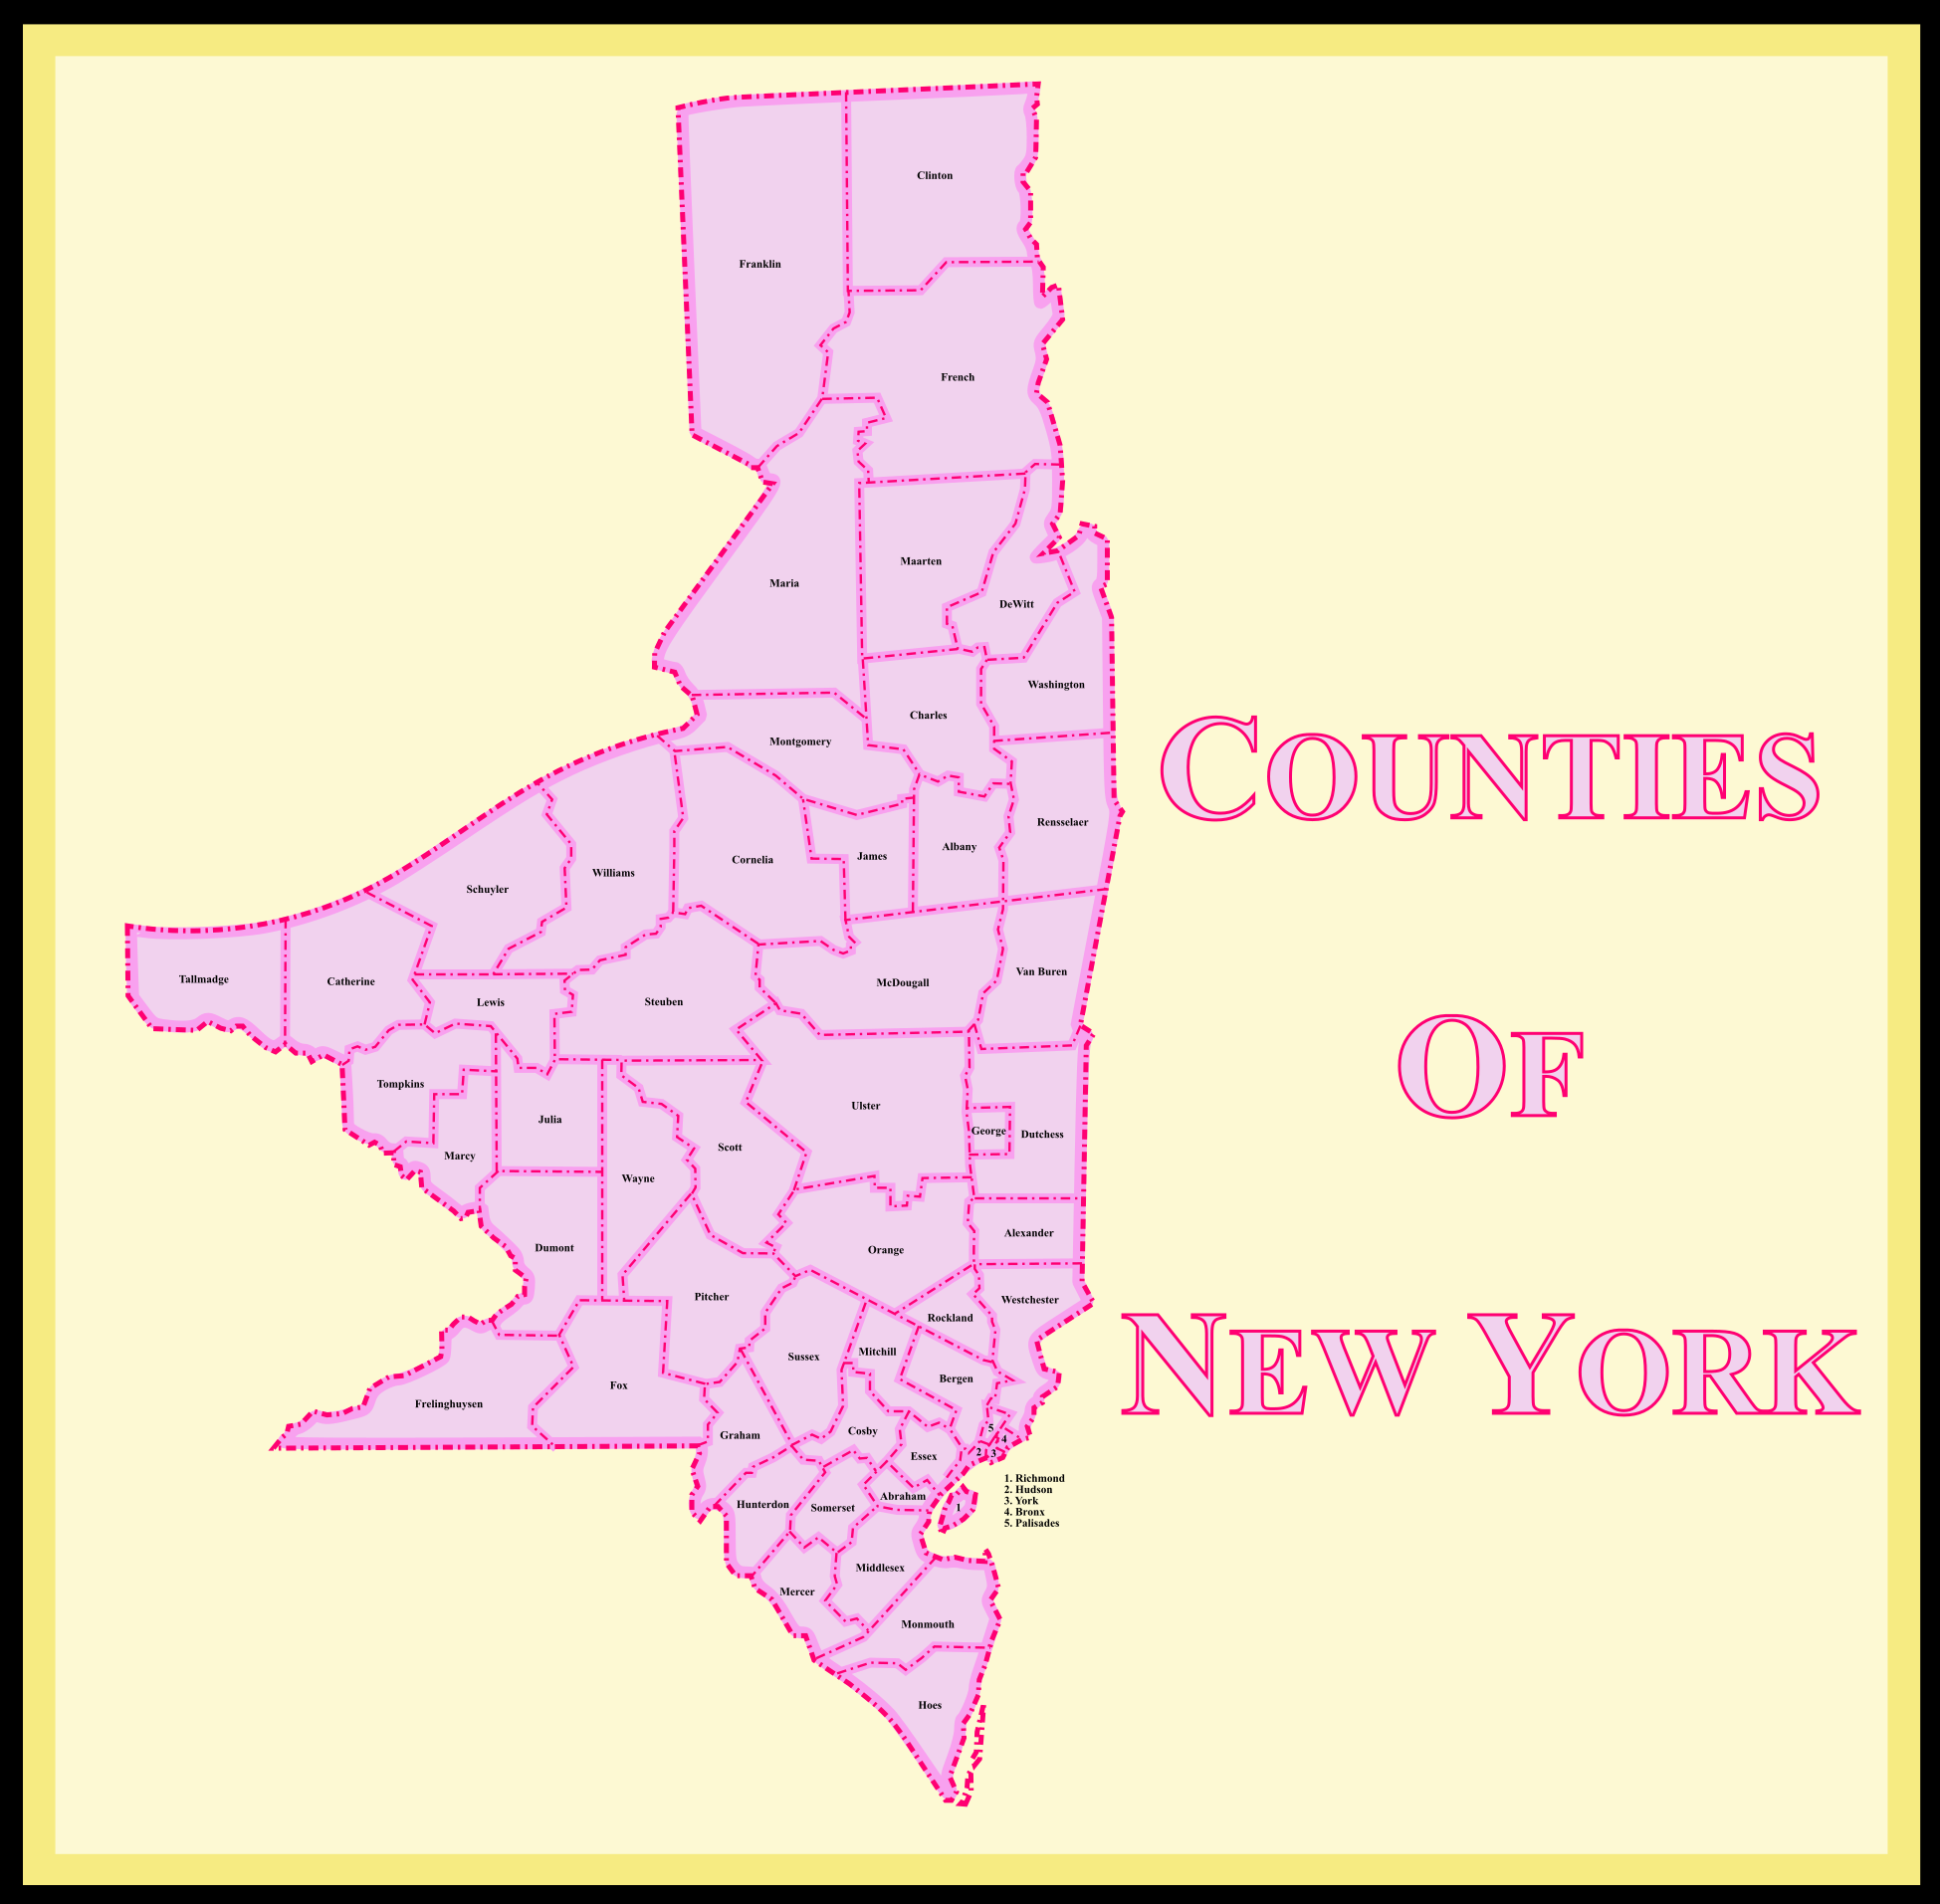 nycounties.png